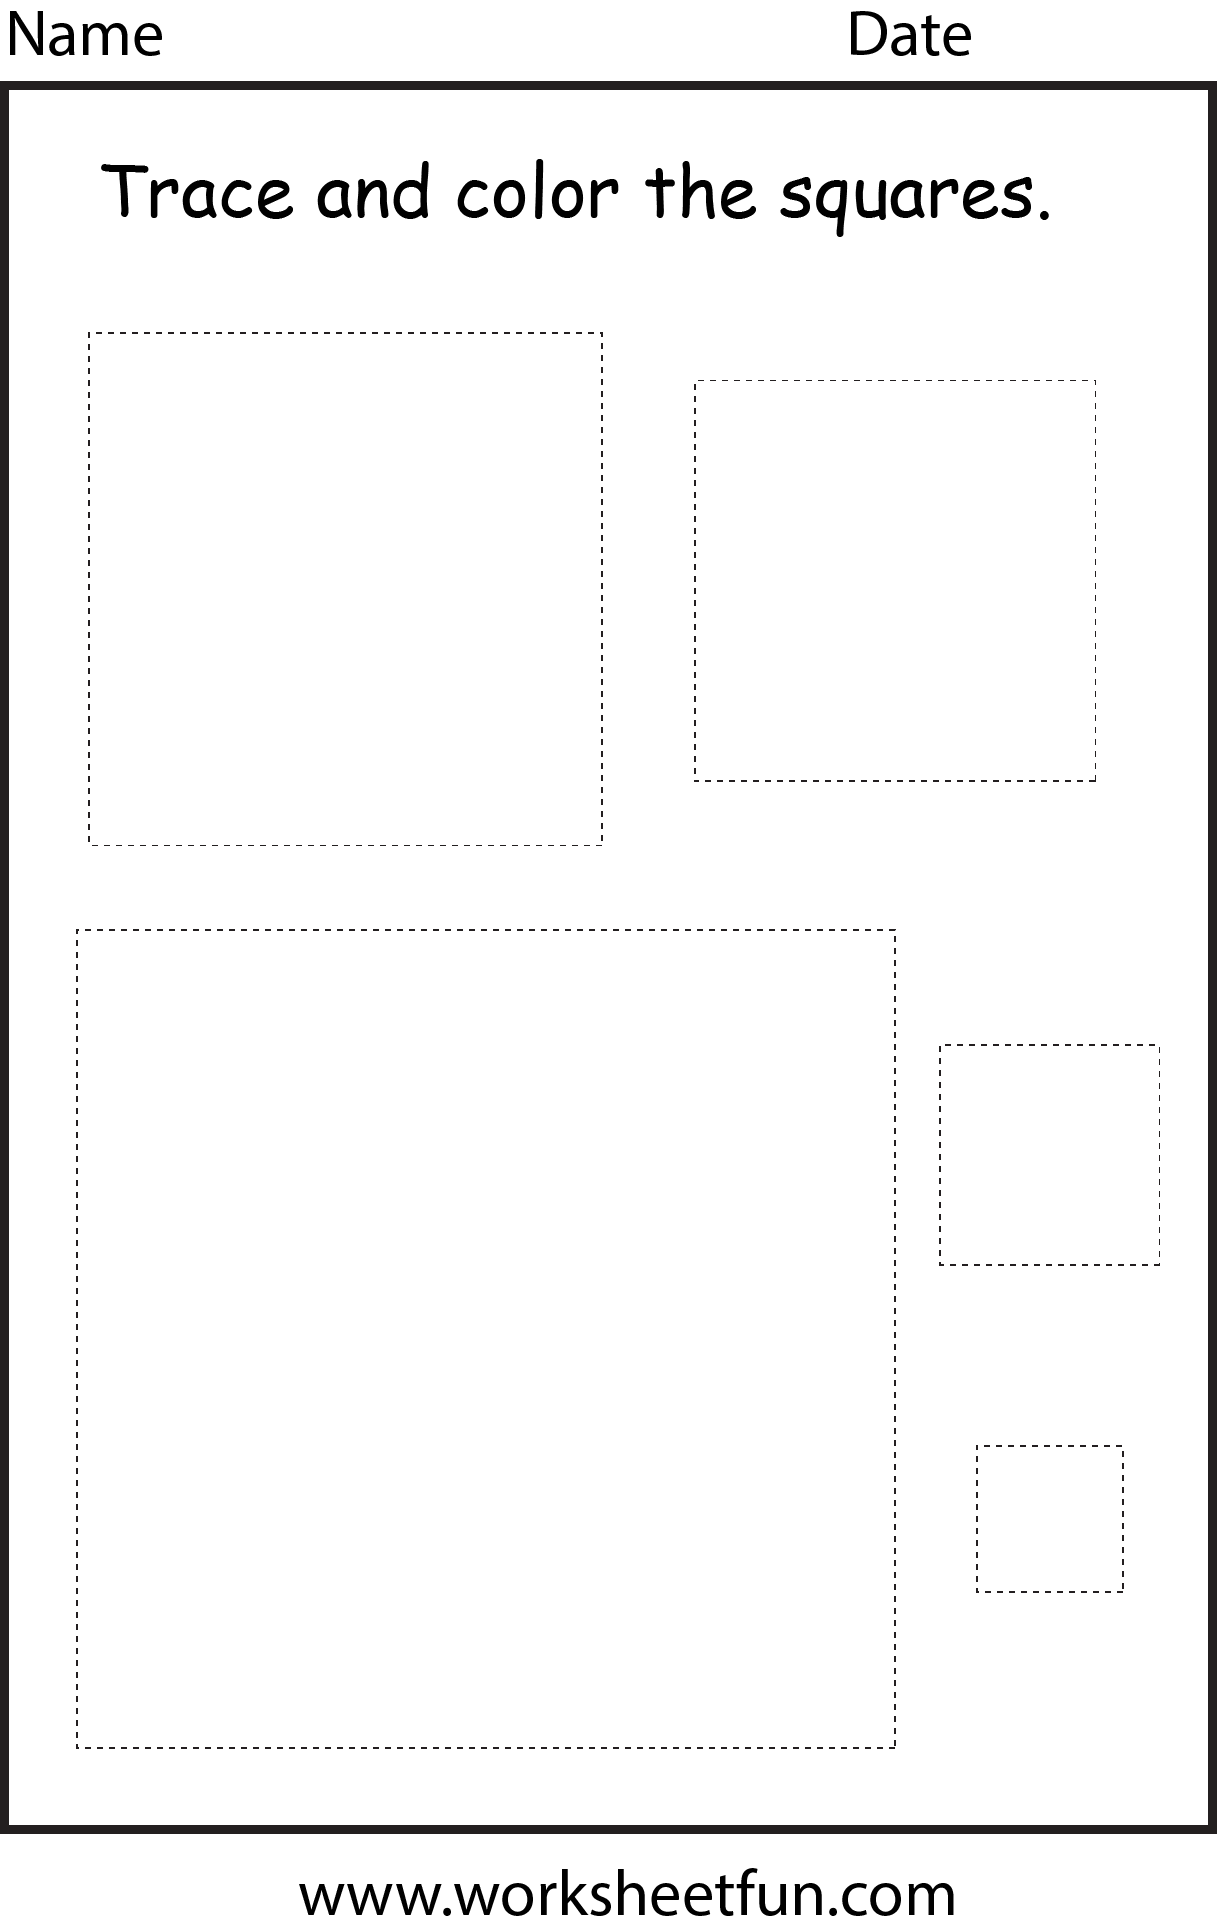 Shape Square 1 Worksheet Free Printable Worksheets Worksheetfun